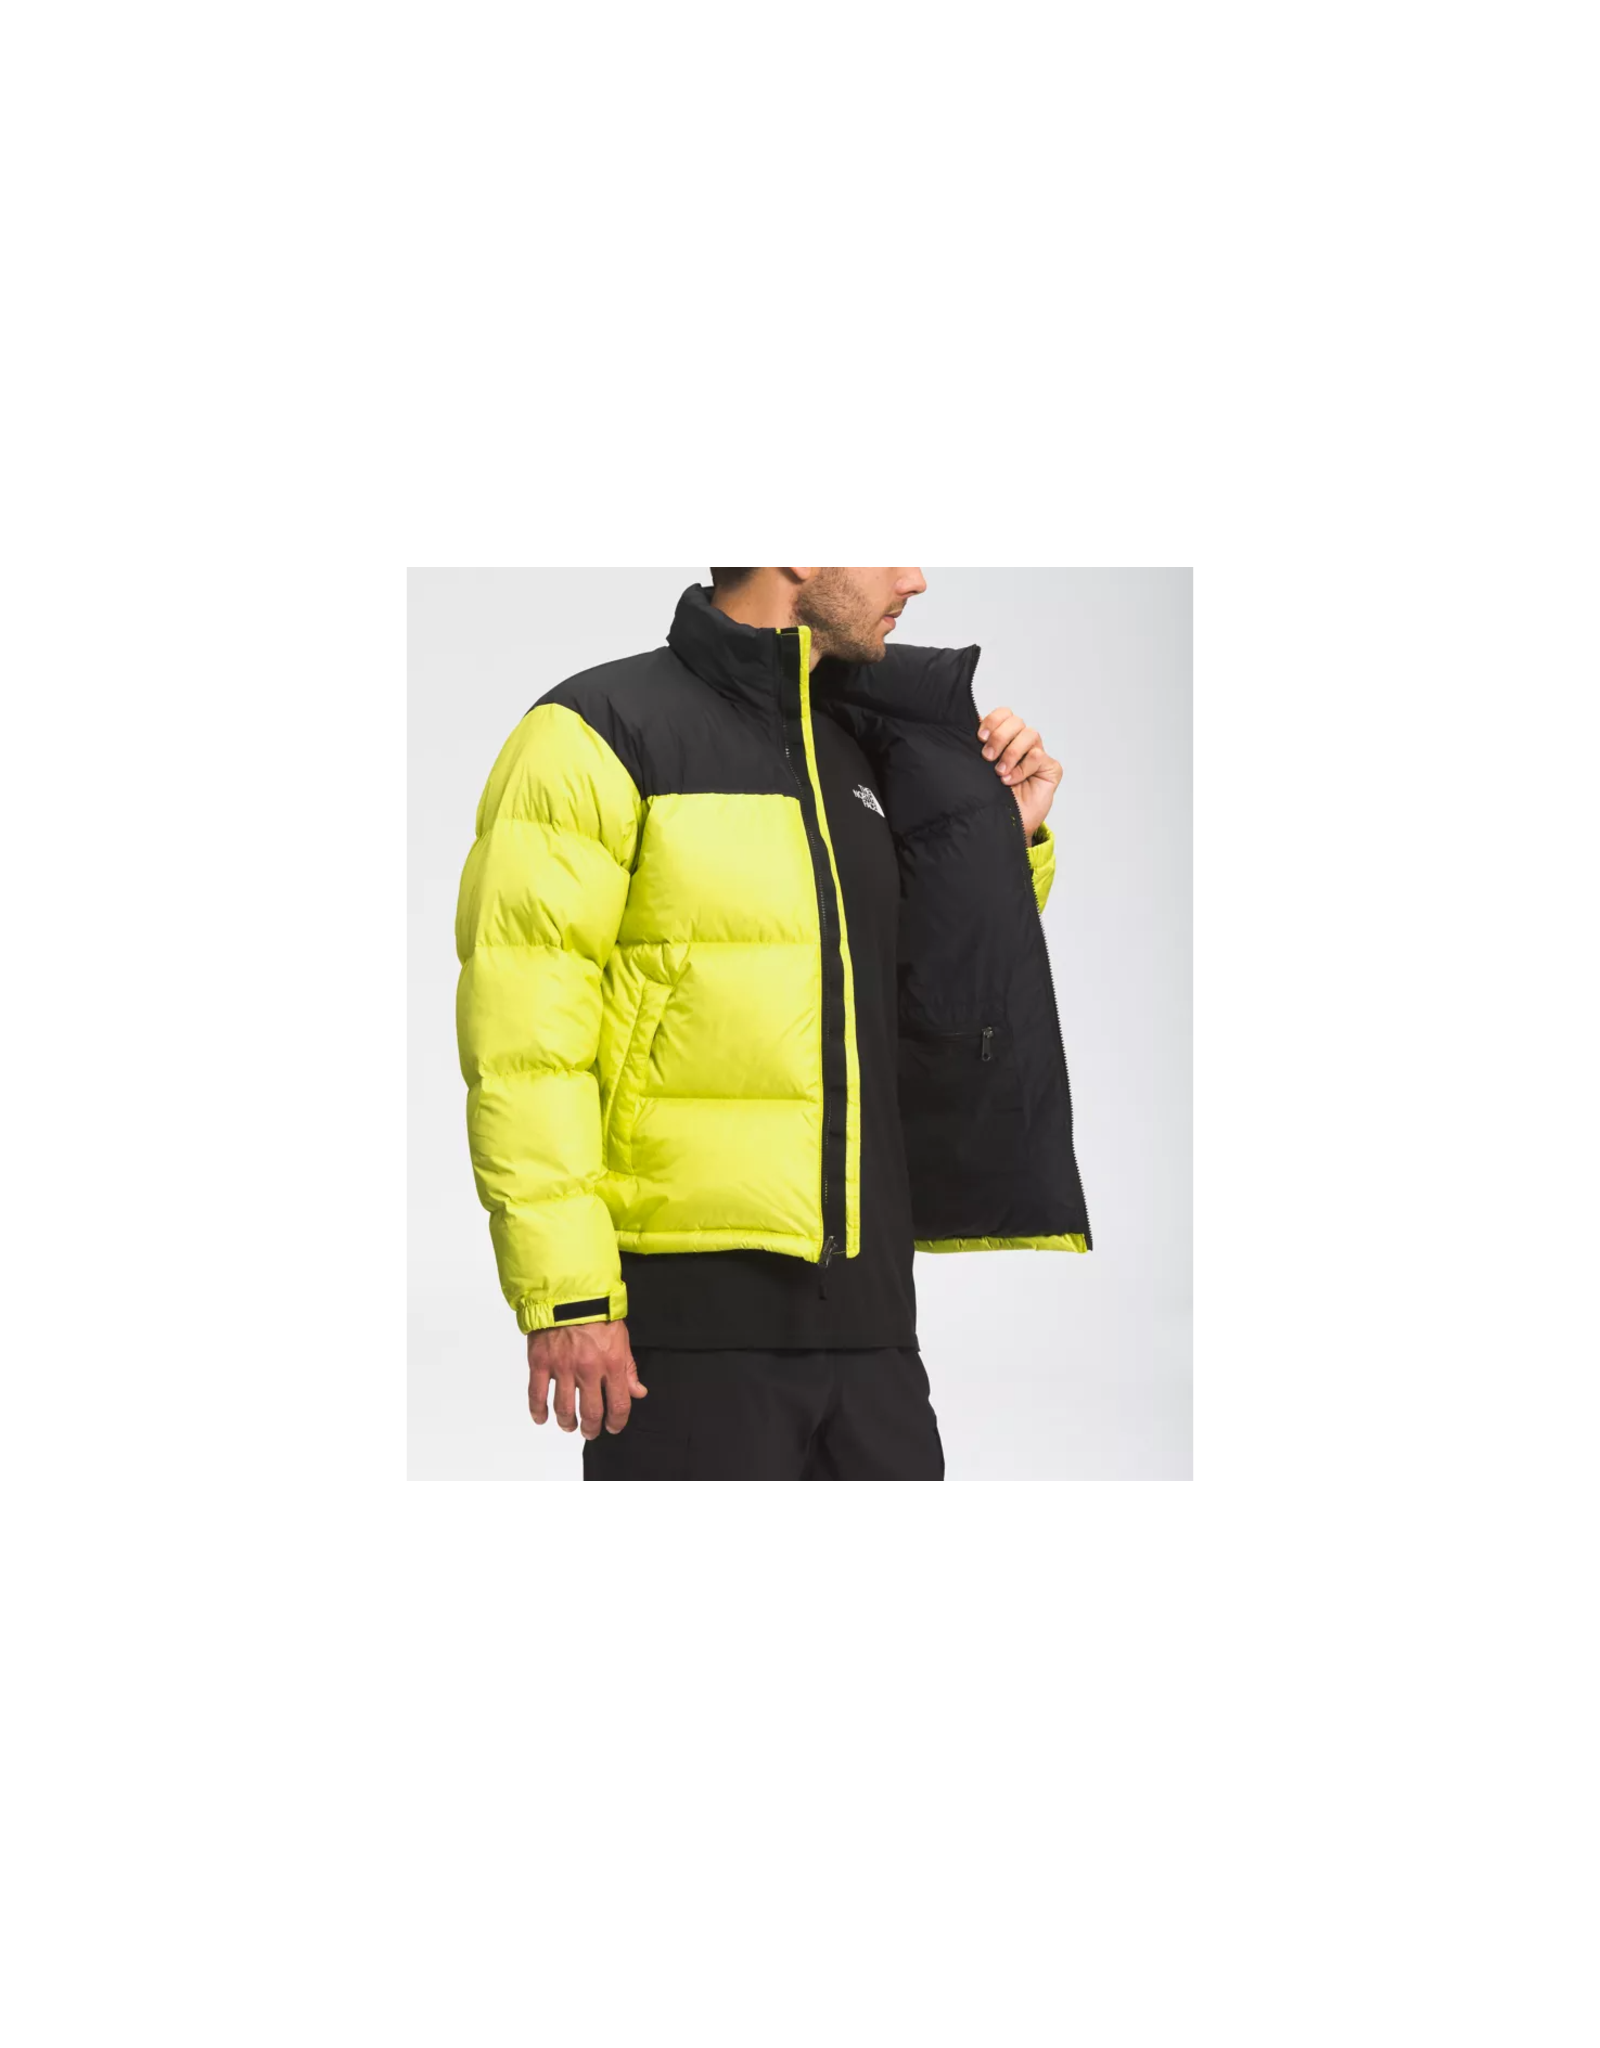 NORTHFACE 1996 retro npse jkt super green